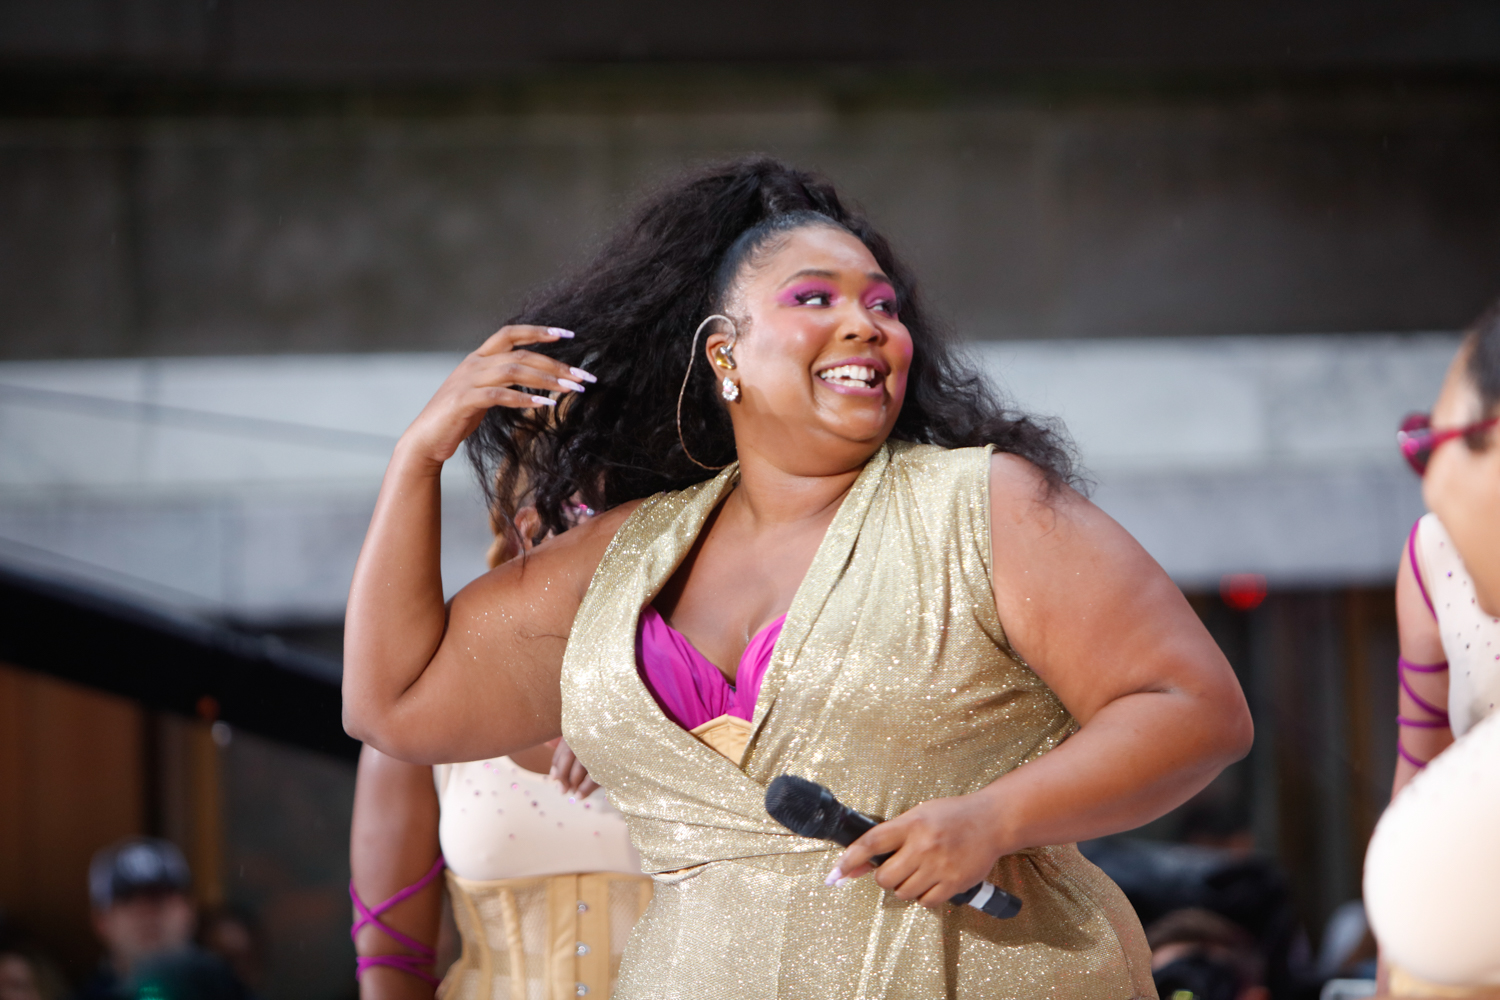 Lizzo and Beyonce Land Shorty Awards For Social Media